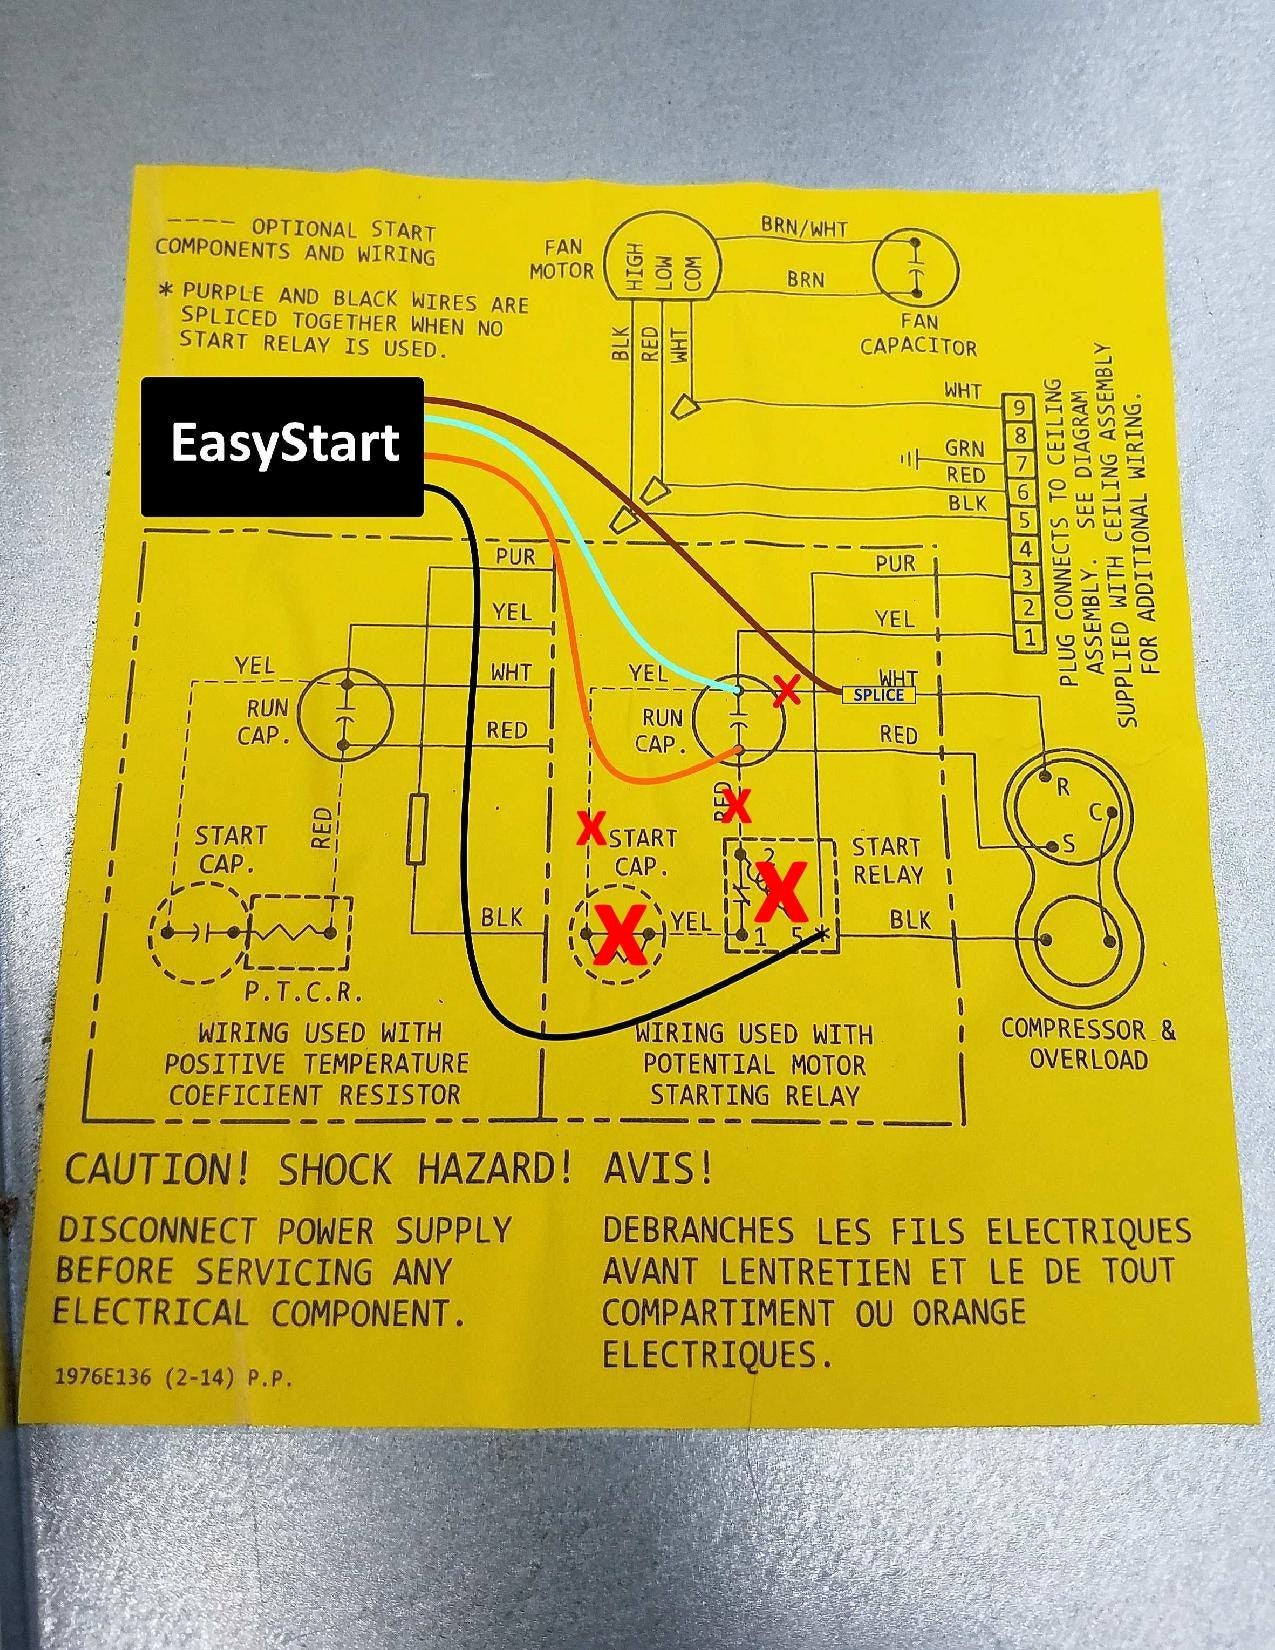 Coleman Mach Wiring Diagram Schematics Diagrams Air Conditioner 9 Ac Thermostat Rv Easystart Soft Starter Resource Page Micro Rh Microair Net 7330g3351 Ar7815